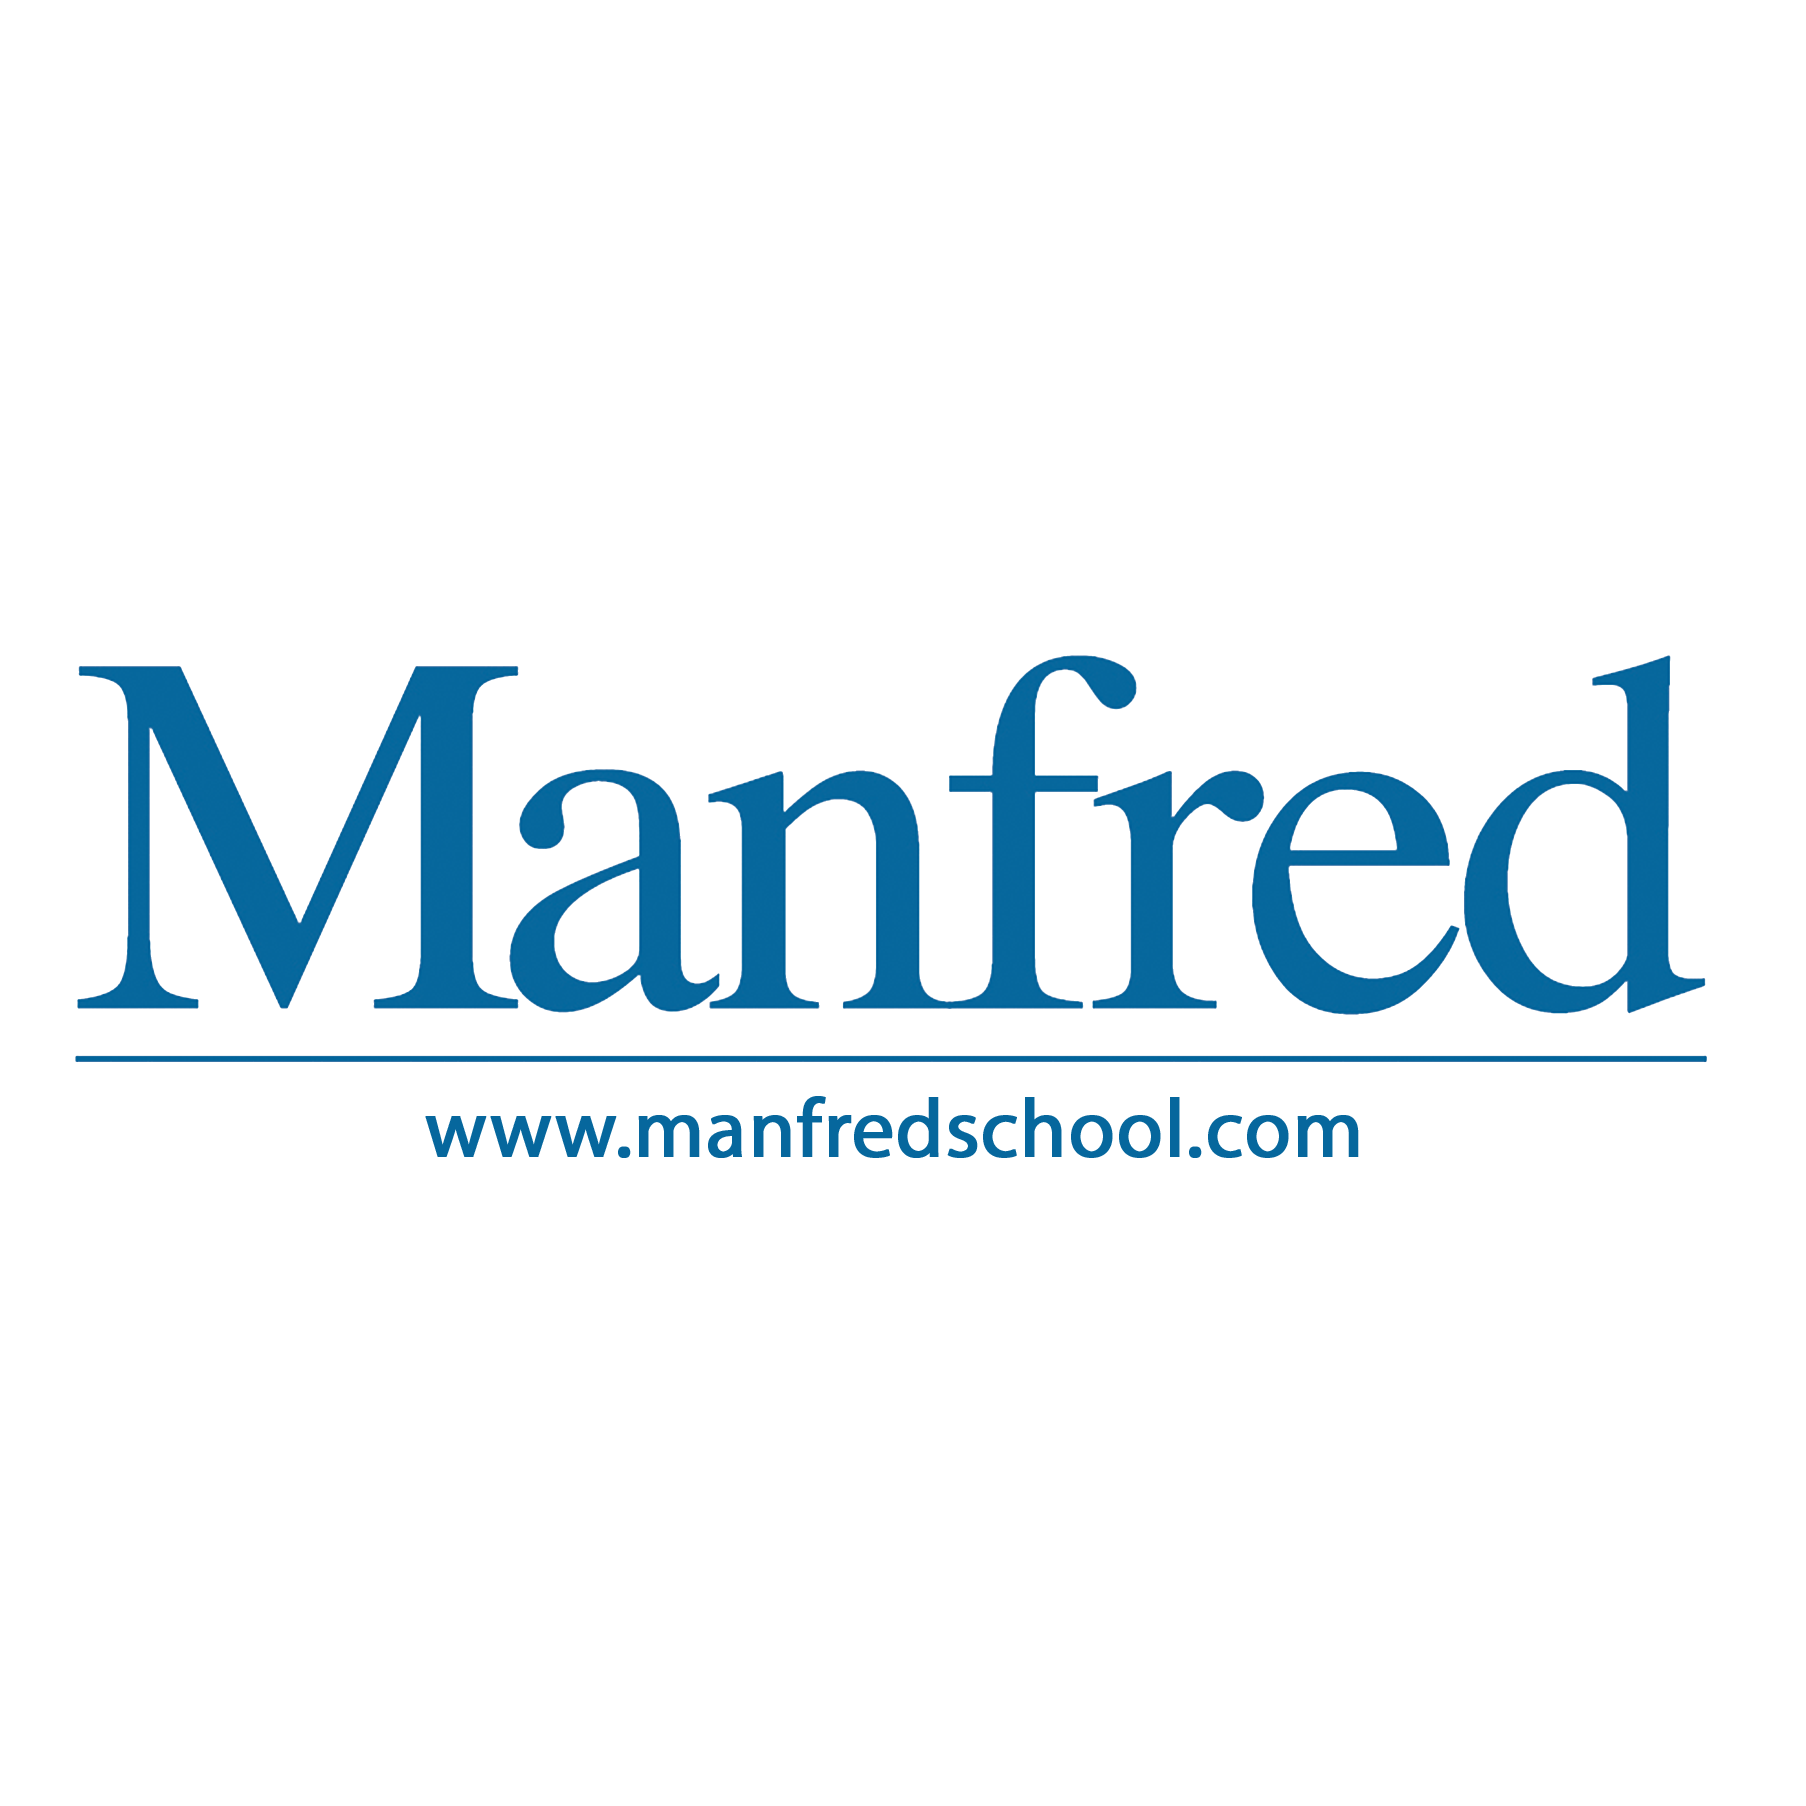 Manfred School